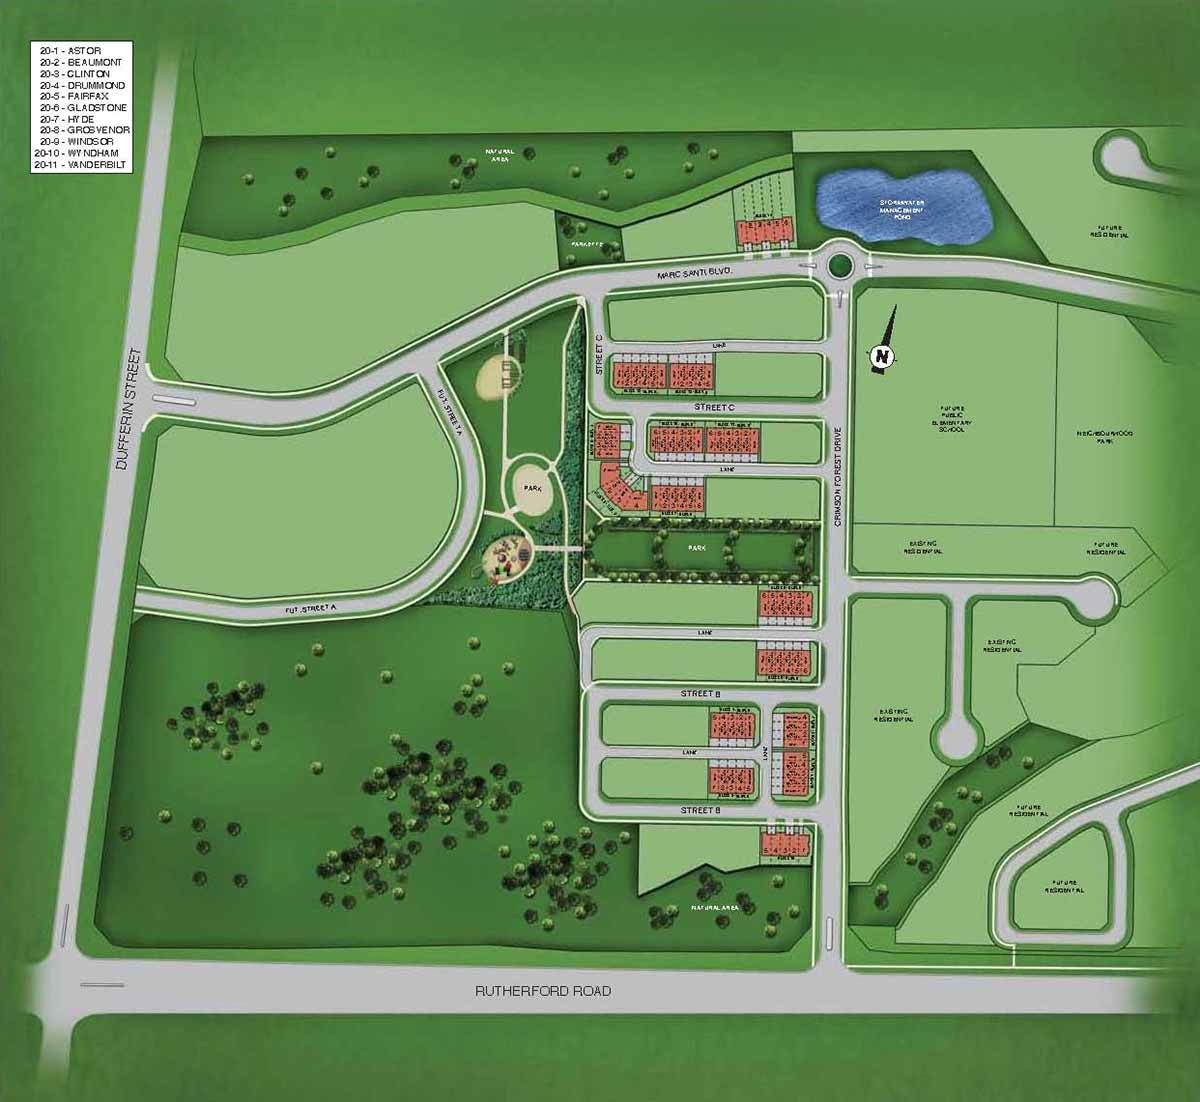 Site plan for Coronation Towns in Vaughan, Ontario